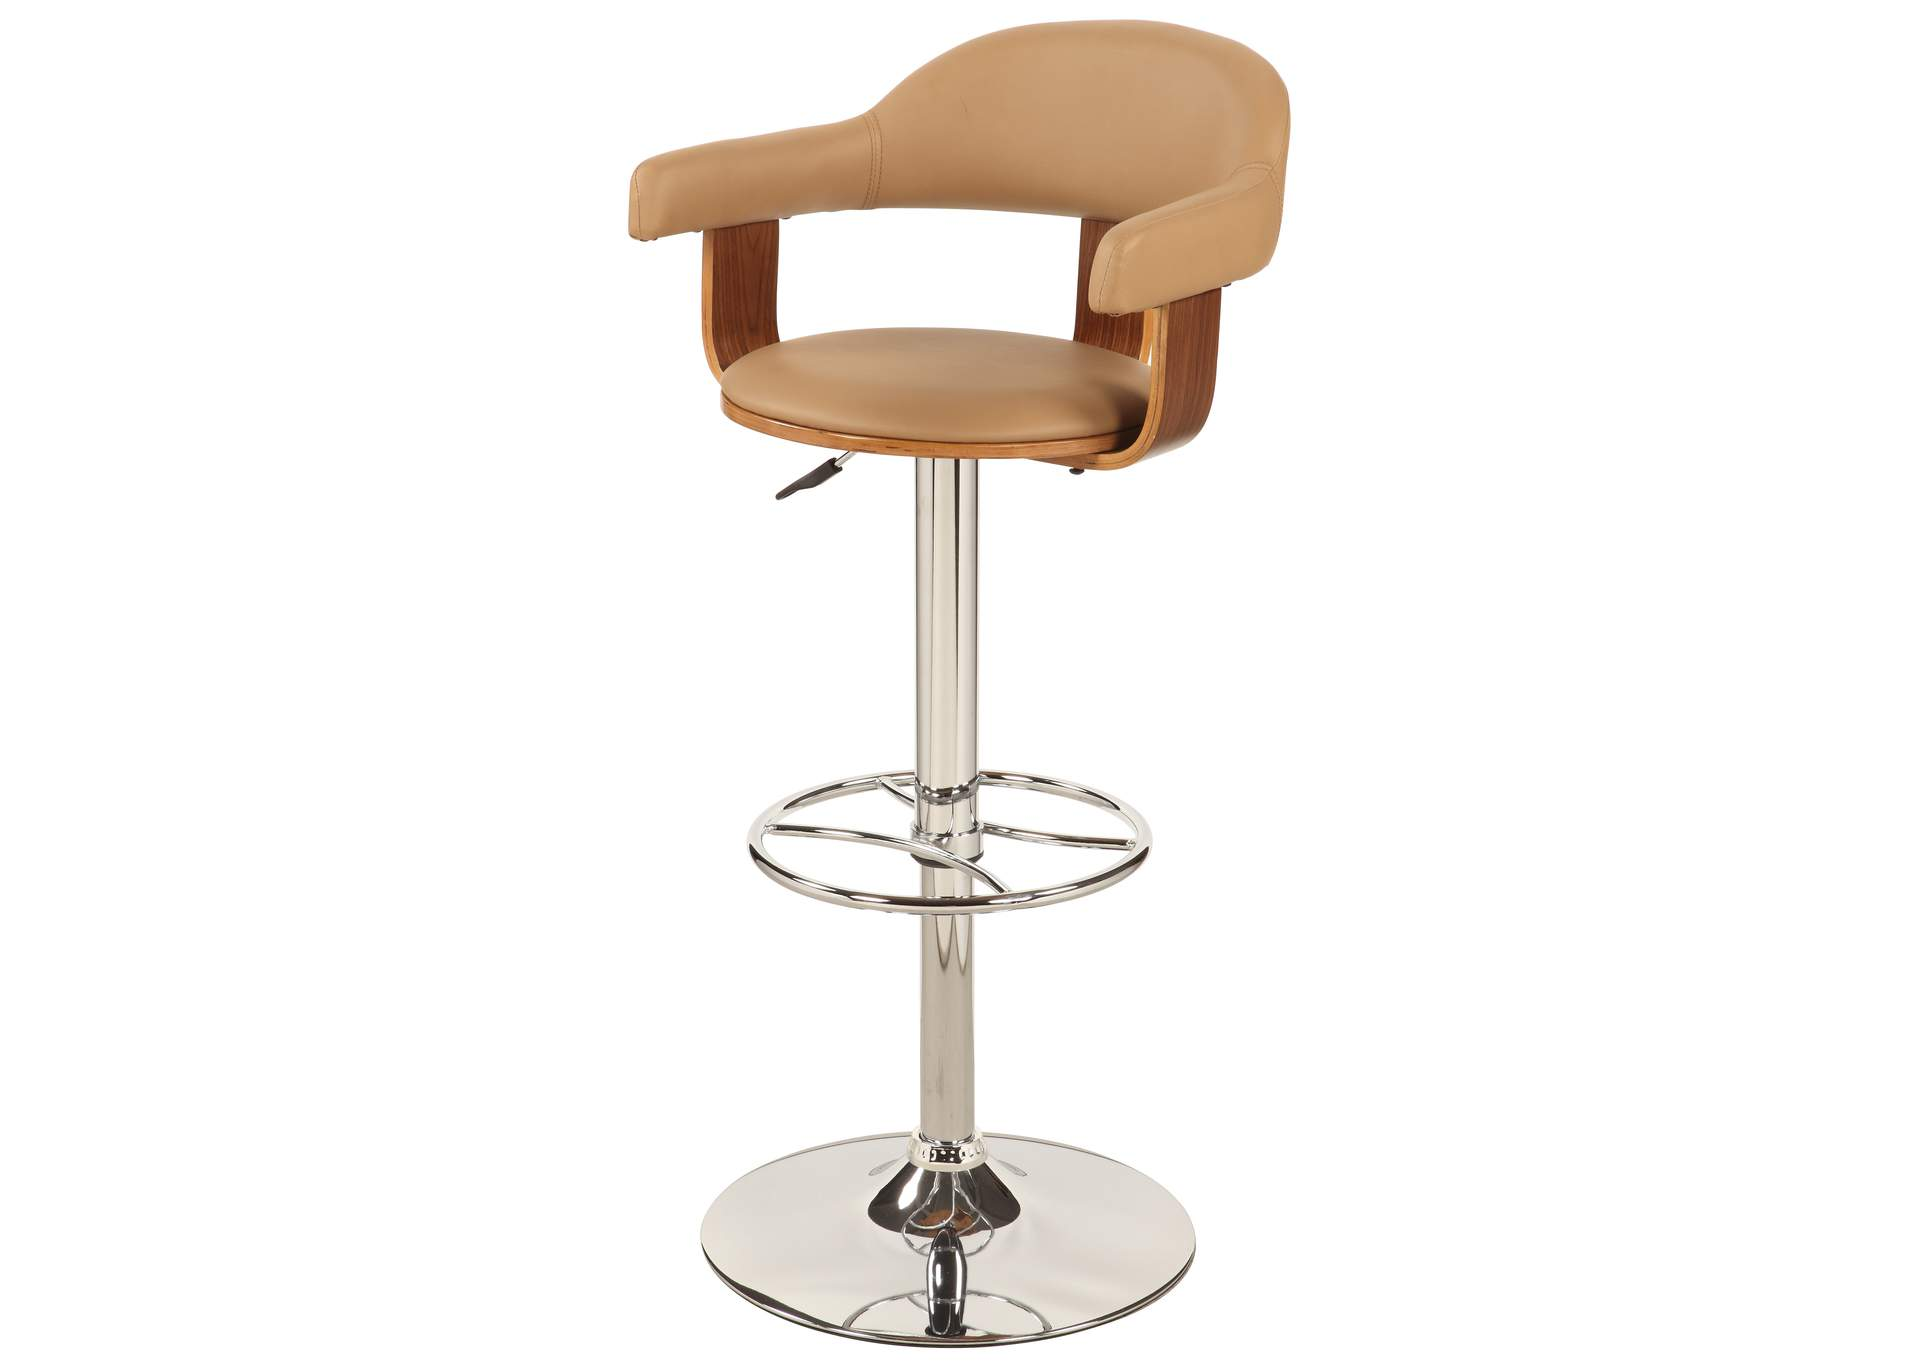 Taupe Upholstered Back Pneumatic Swivel Stool,Chintaly Imports